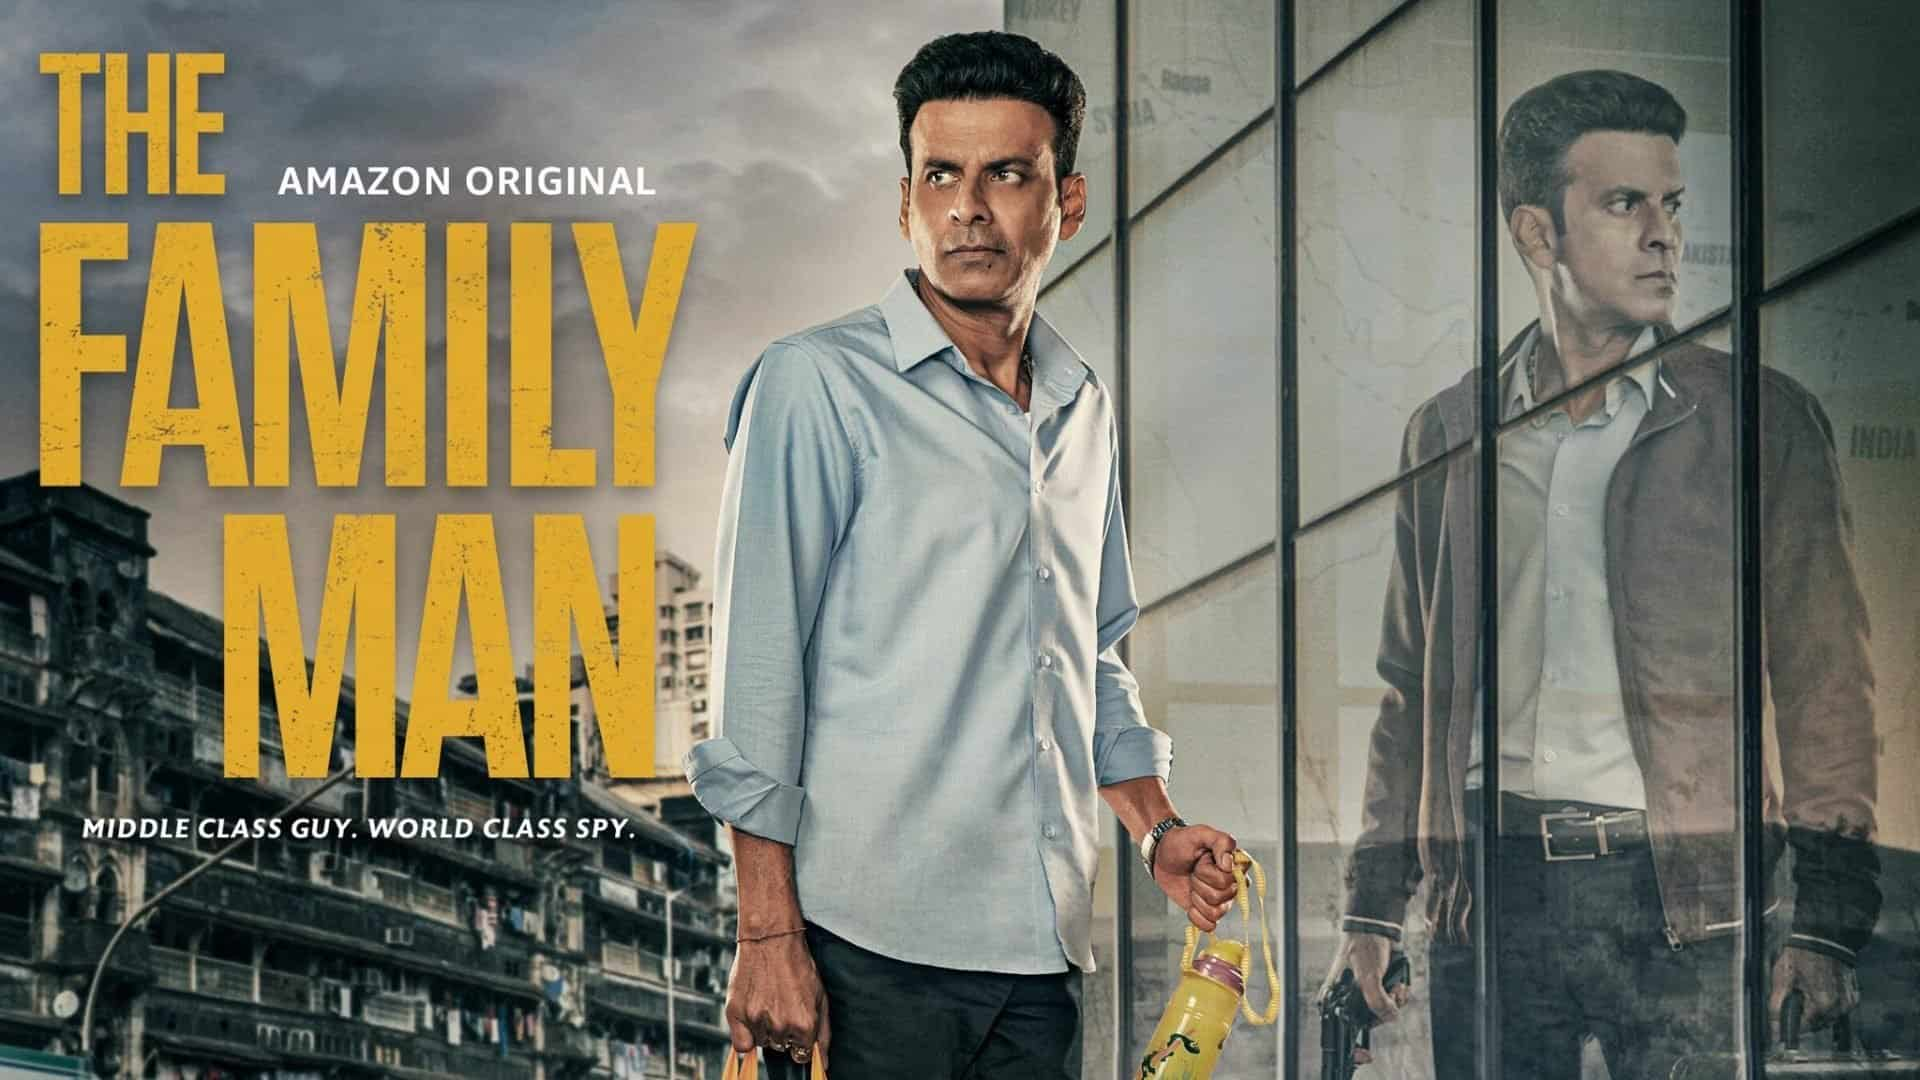 The Family Man Season 2 trailer to release on May 19th, fans burst on Twitter